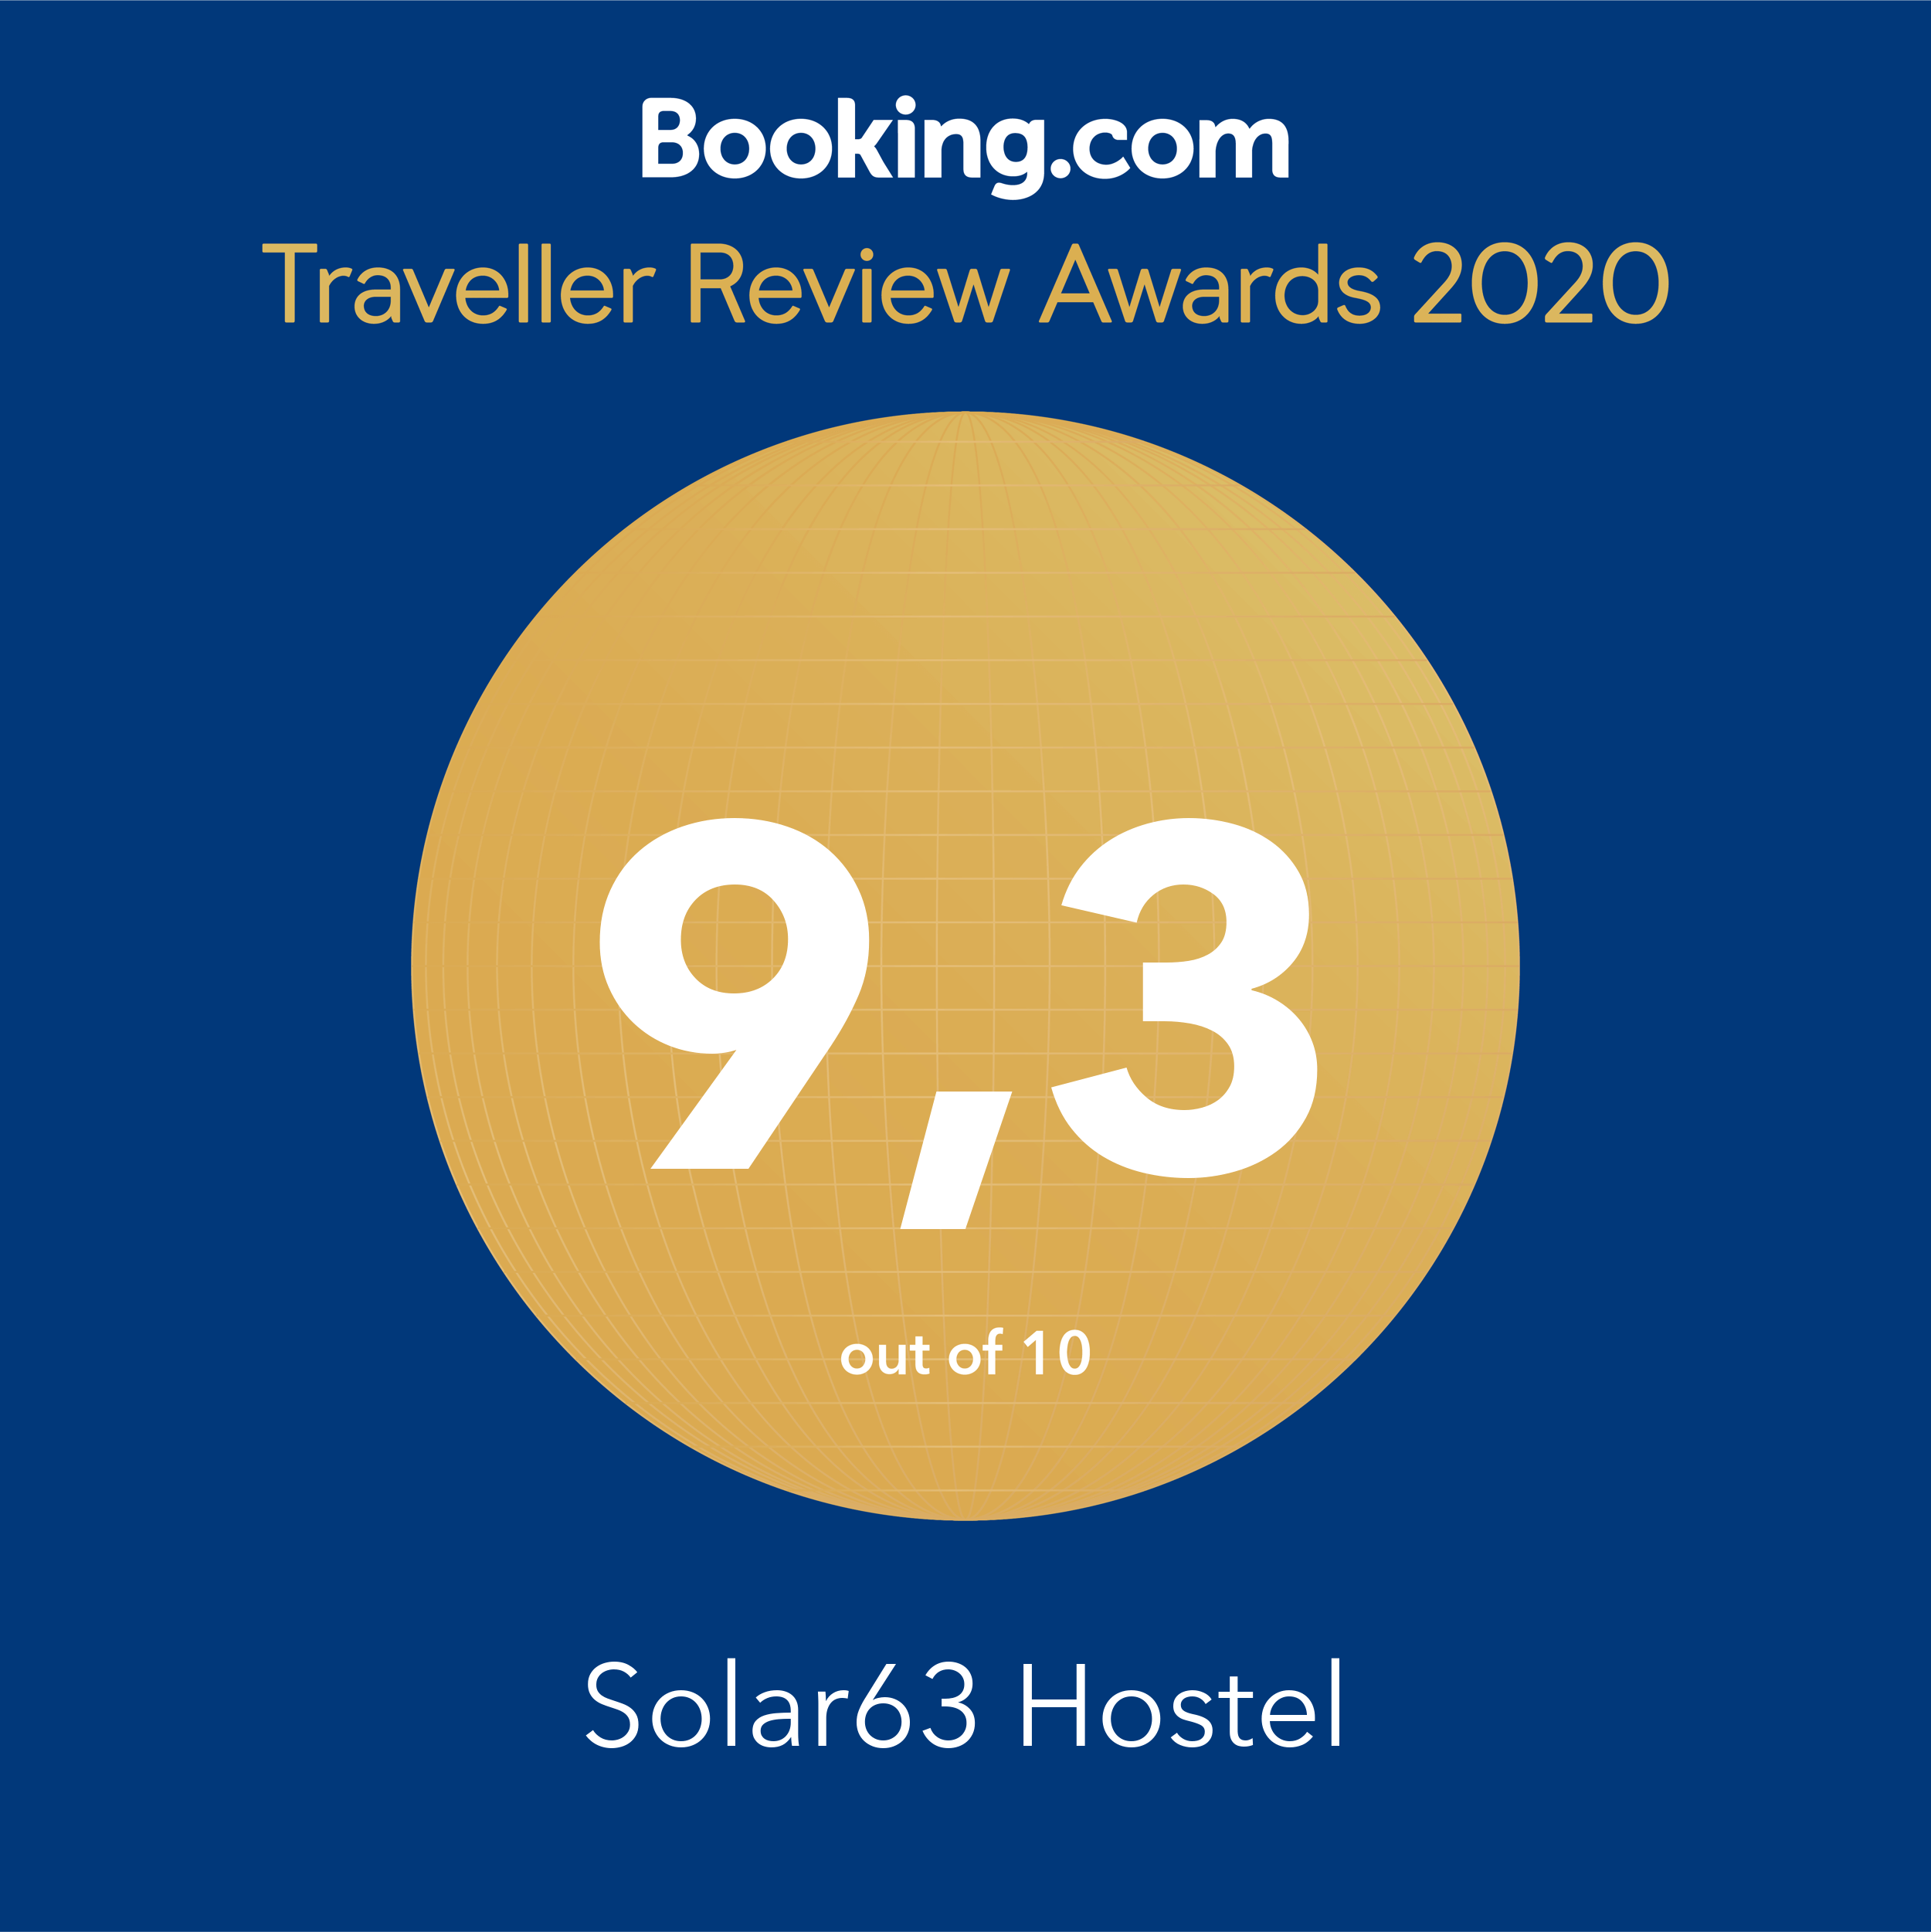 Solar63 Hostel Porto Alegre 9,3 Traveller Review Awards 2020